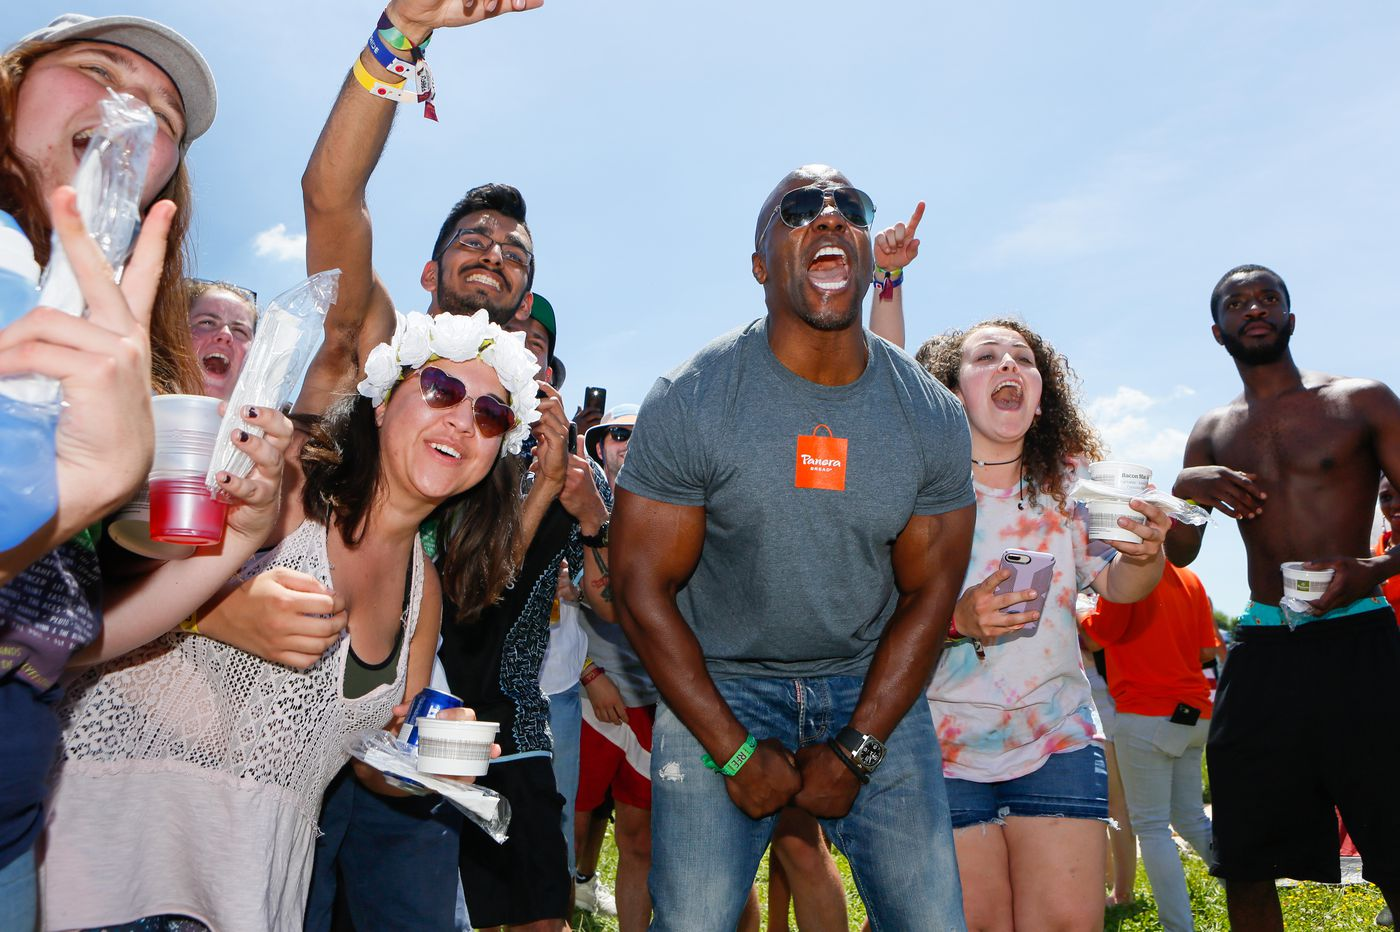 Terry Crews participates in a cheesy promotion at Firefly Music Festival this weekend